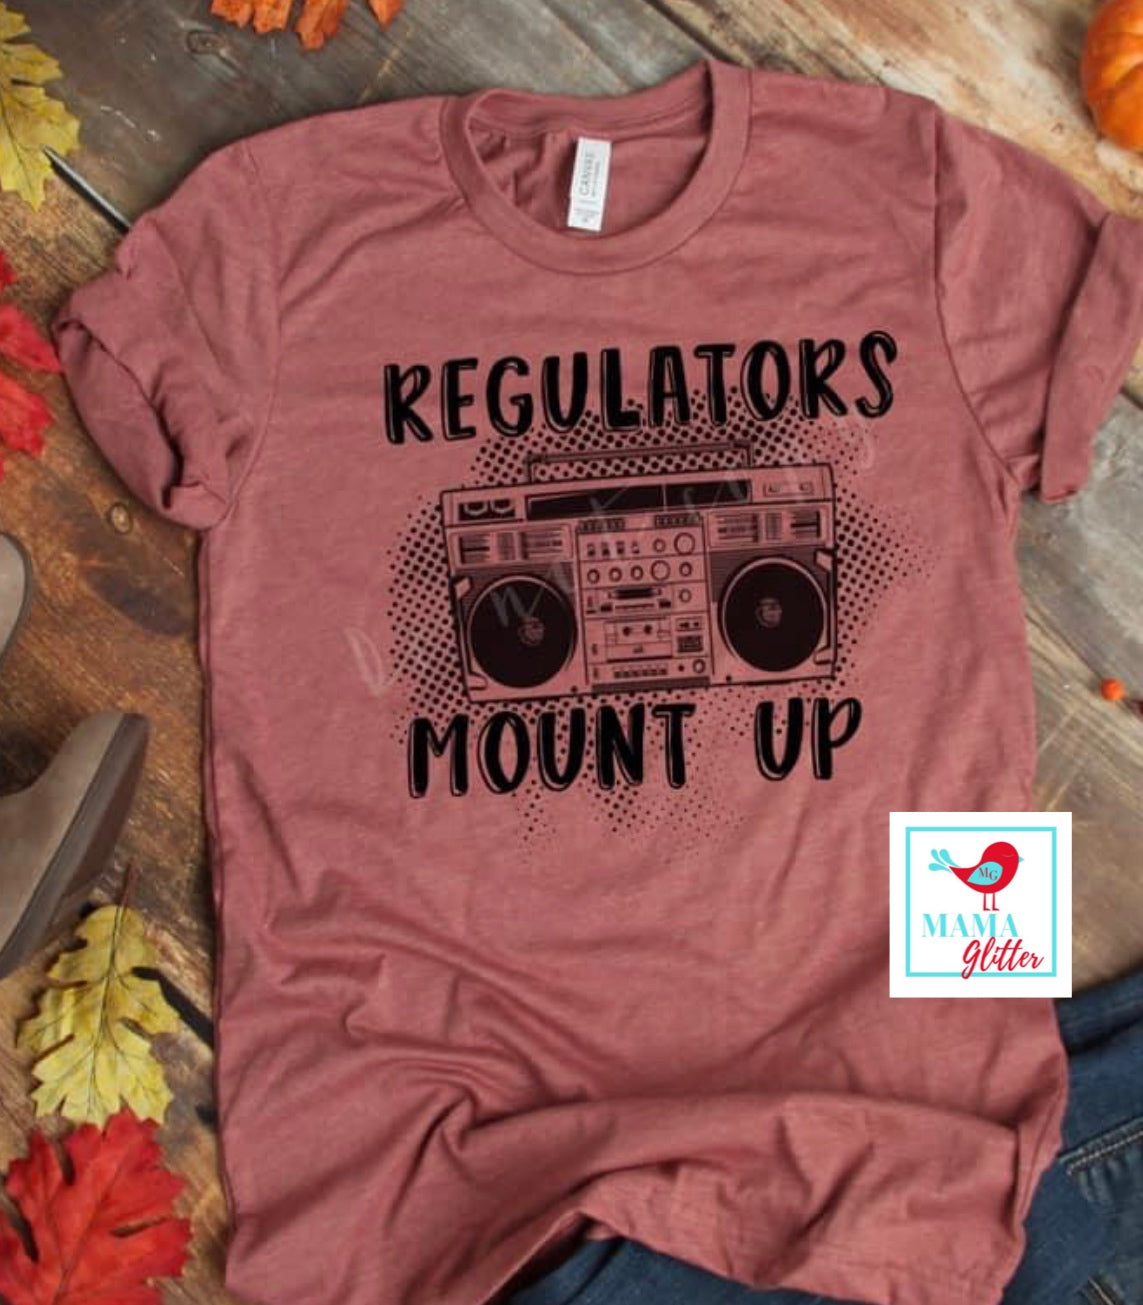 Regulators, Mount Up